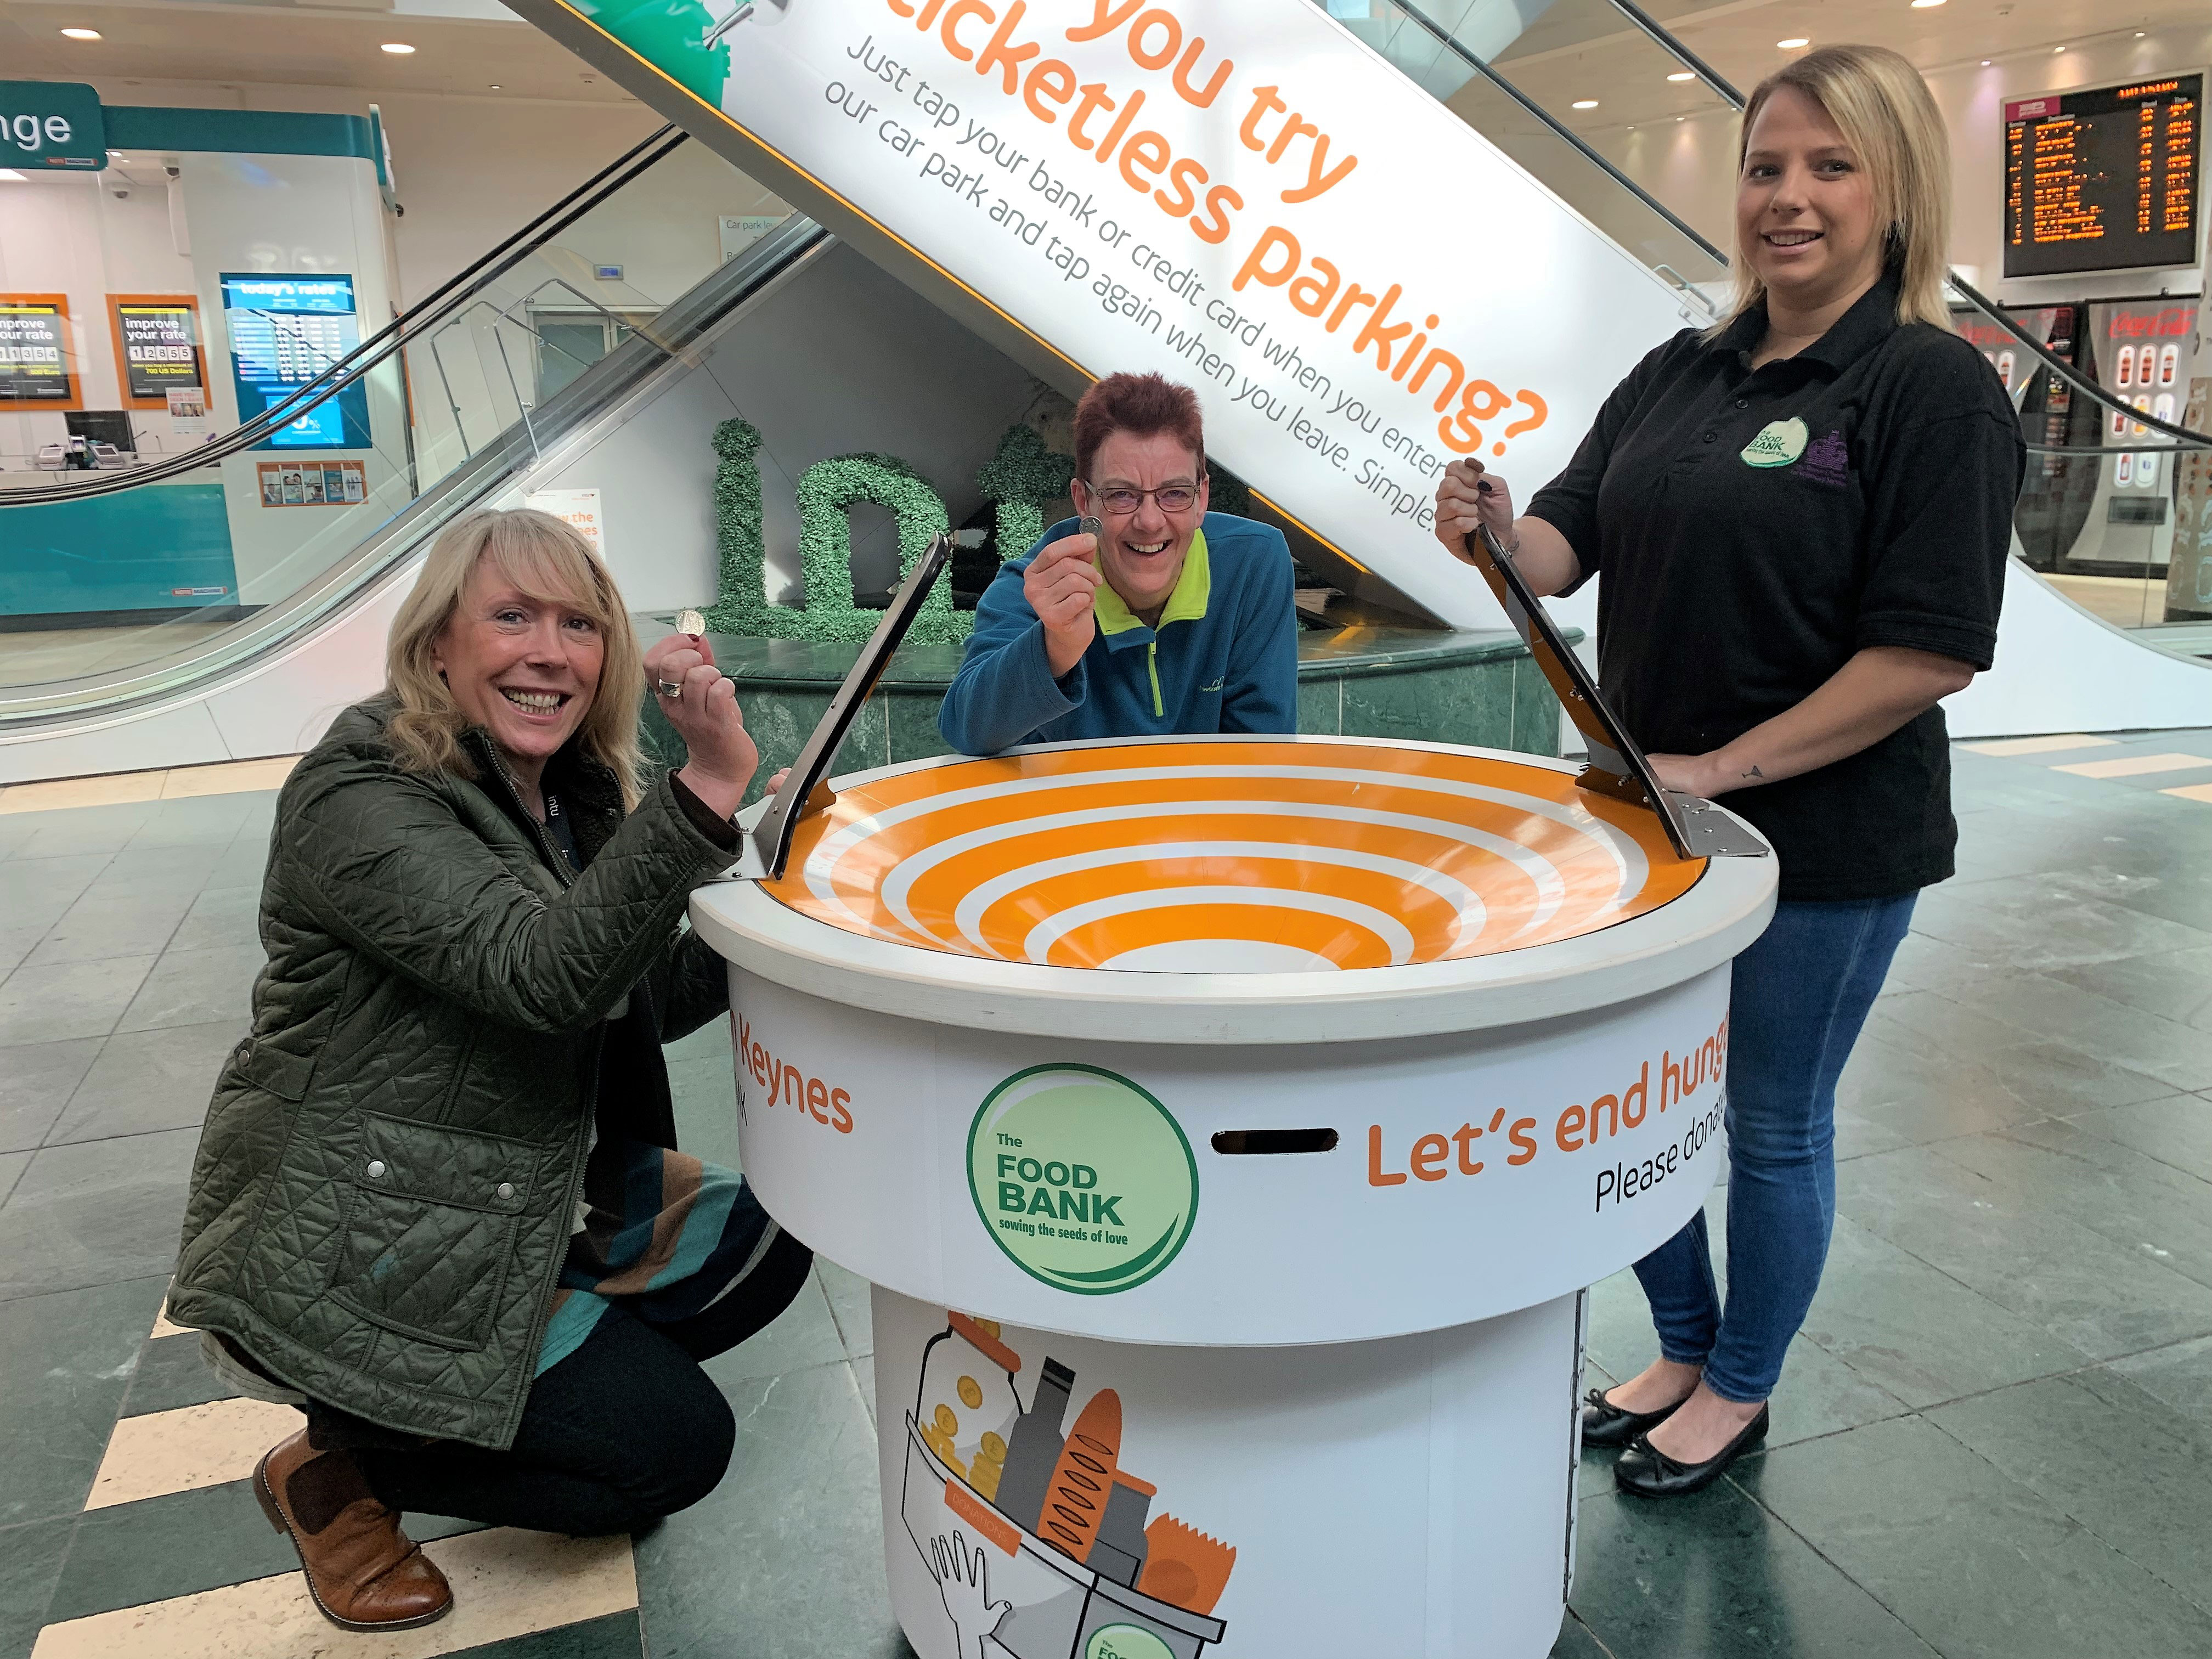 into partners with MK Food Bank